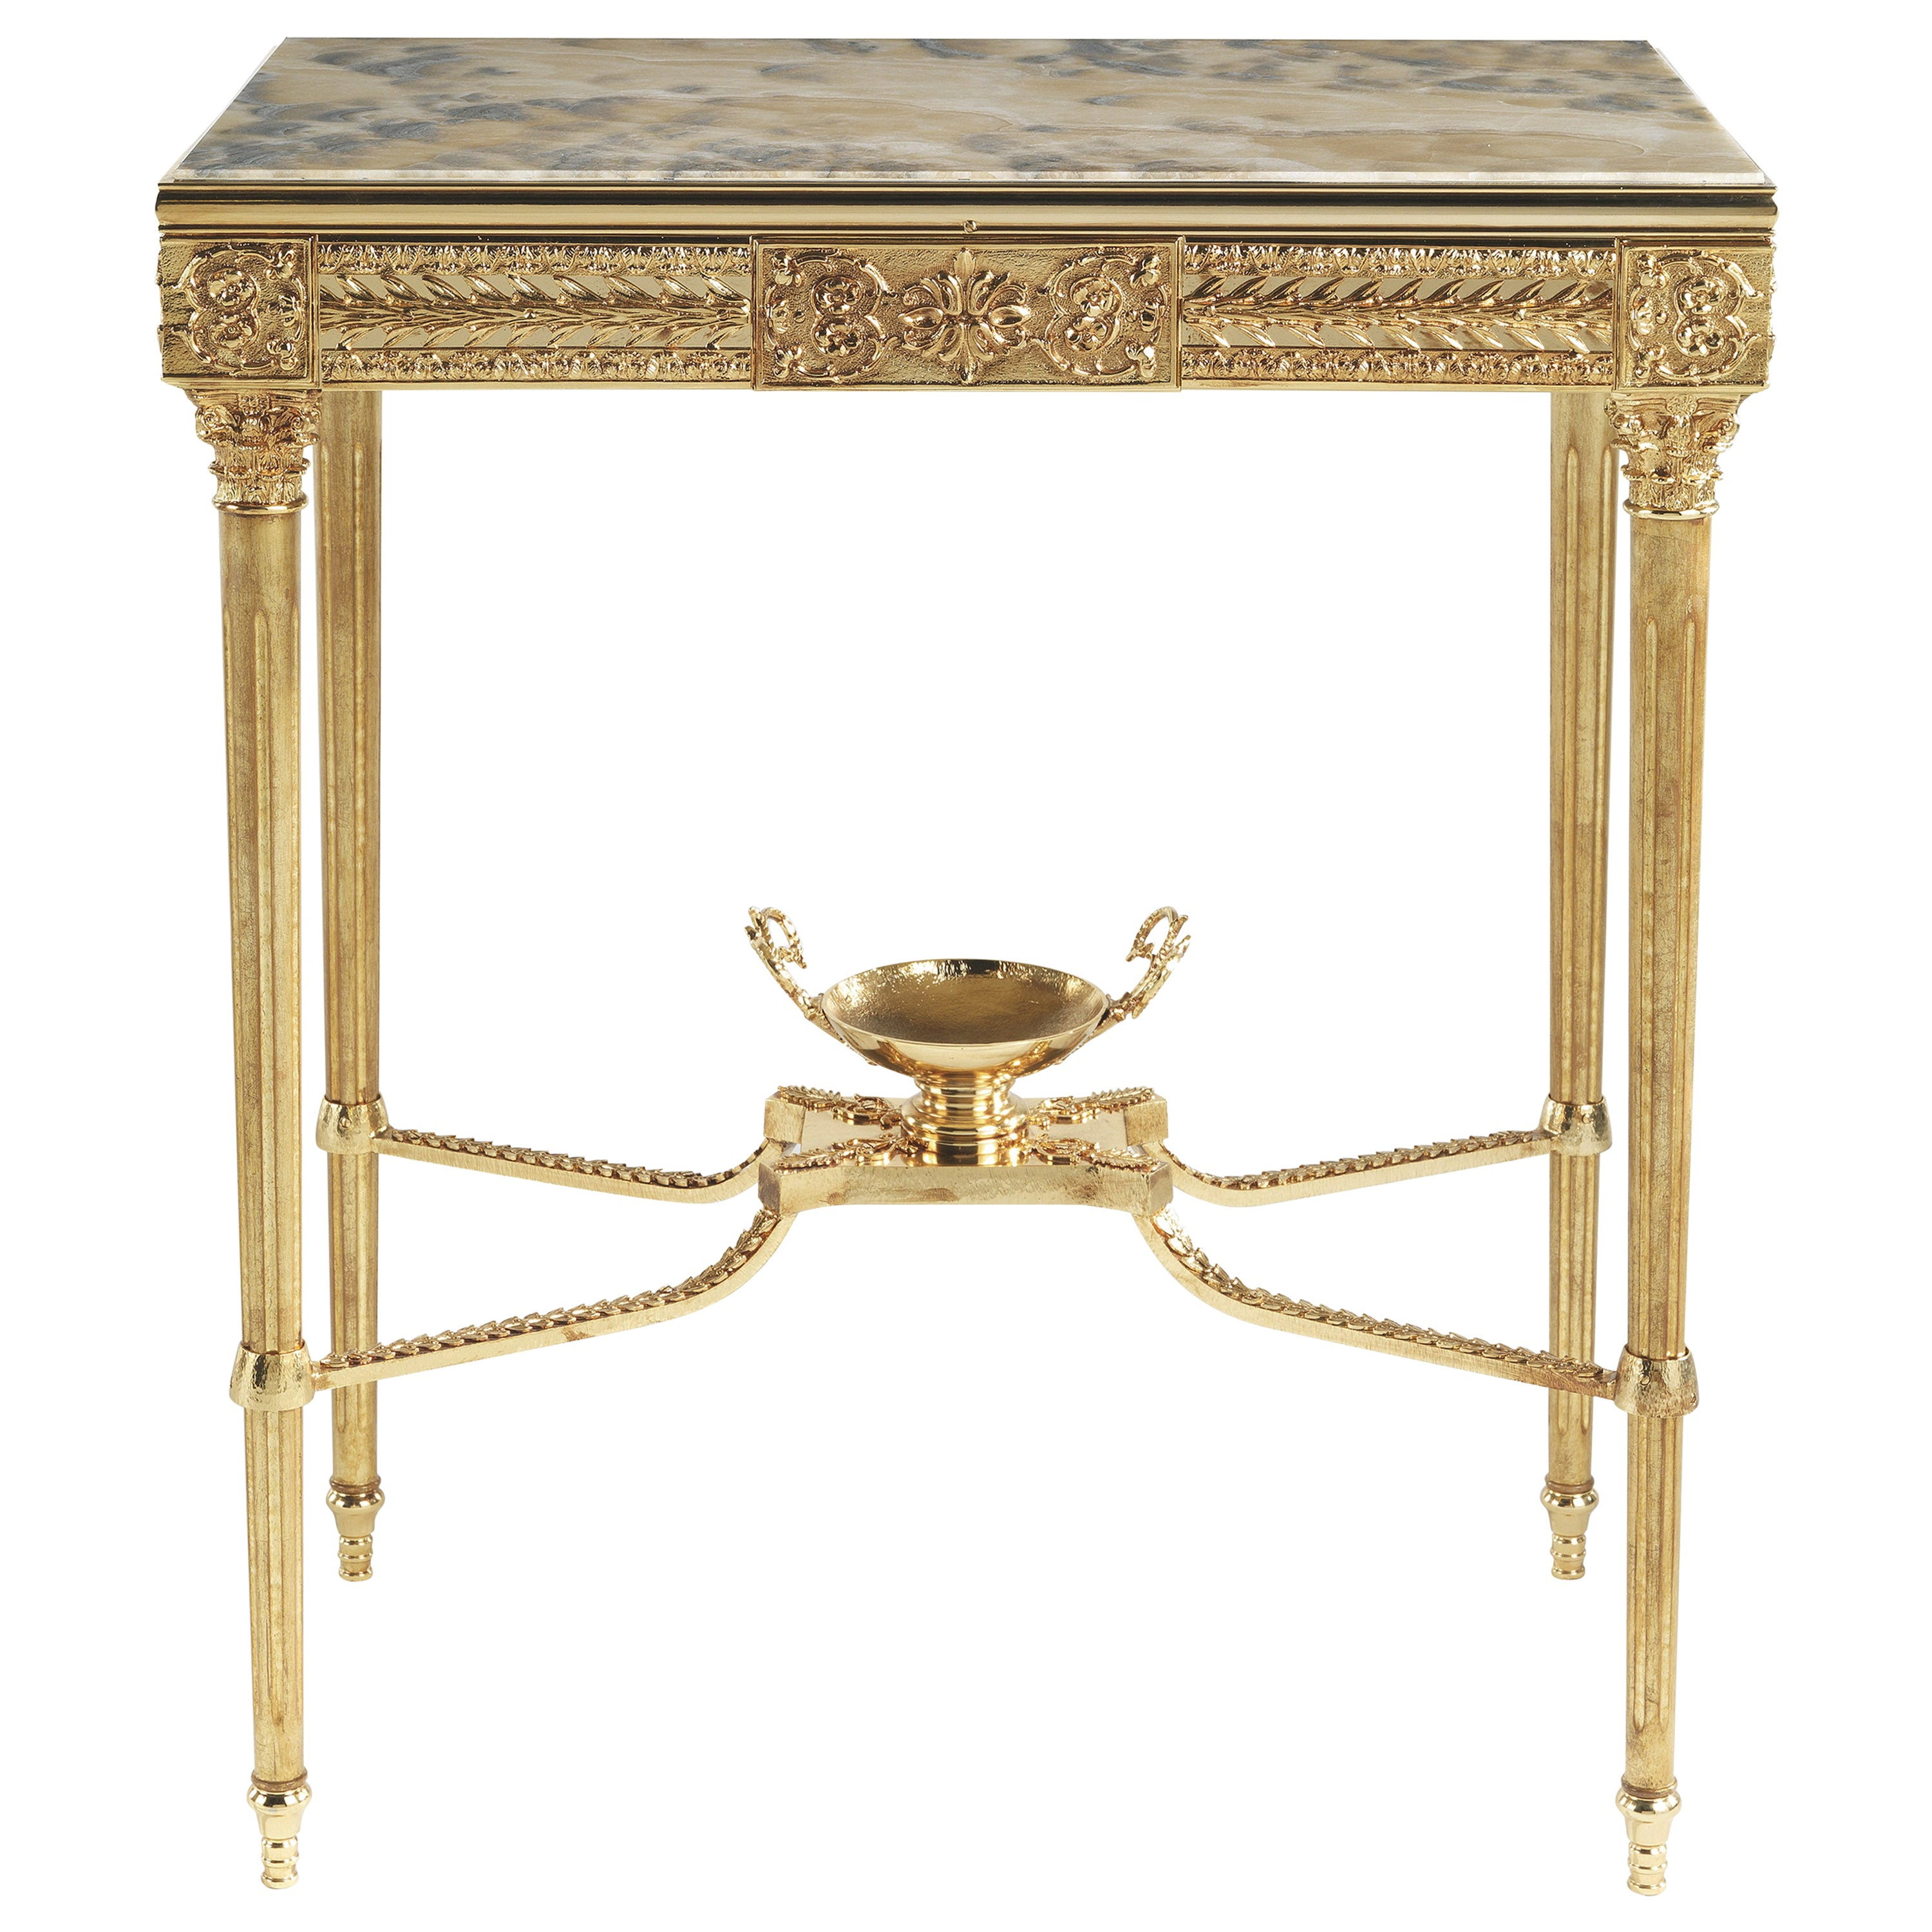 Jumbo Collection Shogun Console Table in Brass and Onyx Top